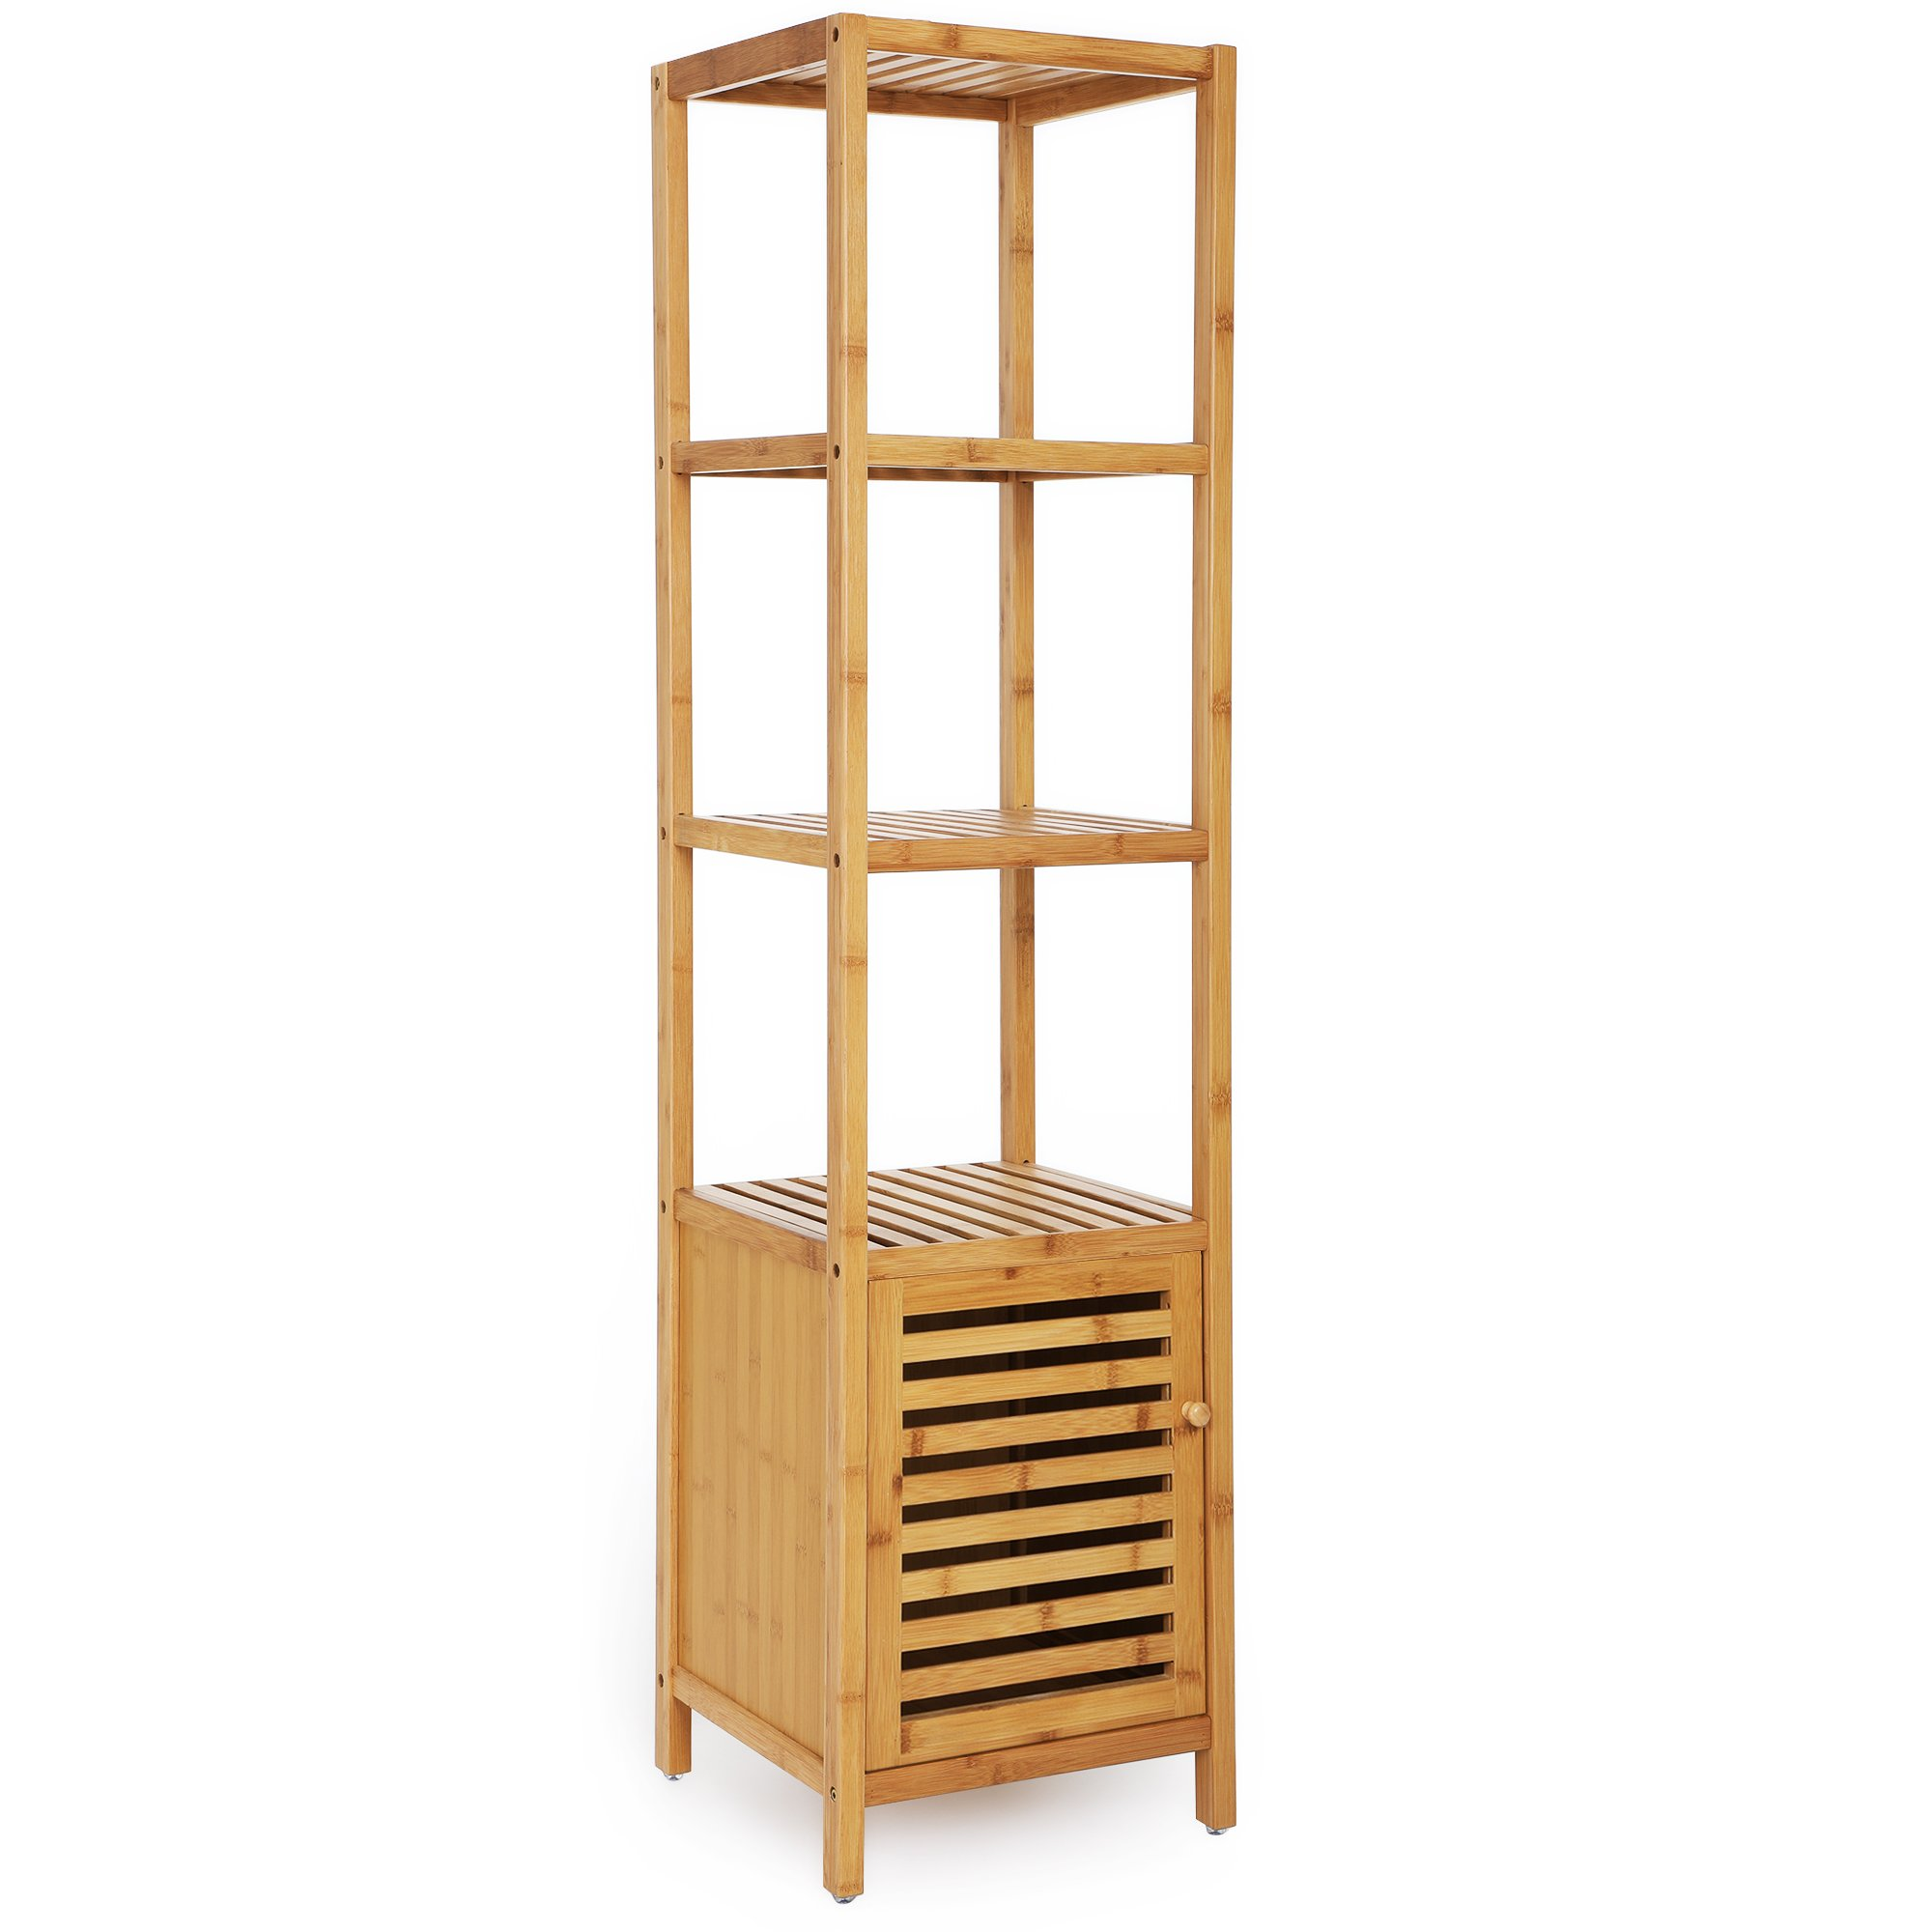 SONGMICS 4 Tiers Bamboo Floor Cabinet Storage Tower Multifunctional Shelving Unit Natural UBCB50Y